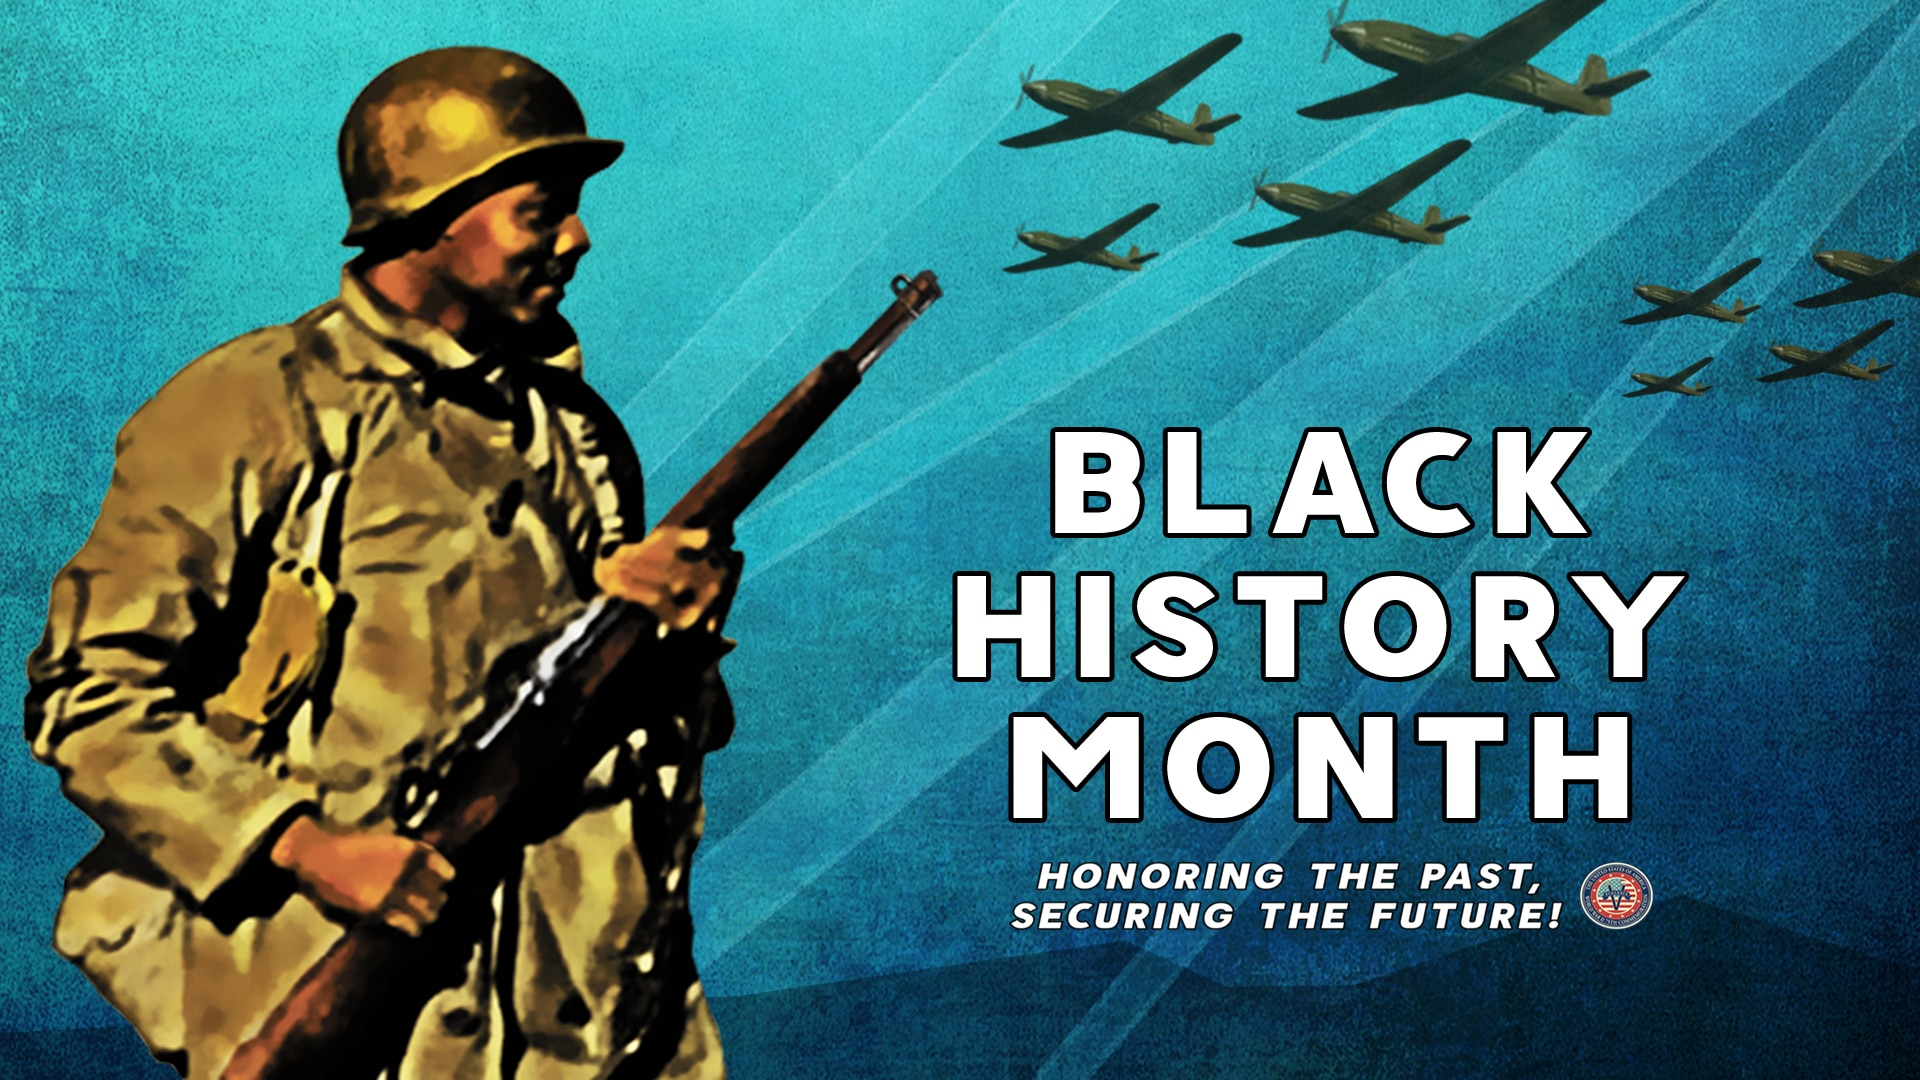 Black History Month Poster from Defense Equal Opportunity Management Institute.